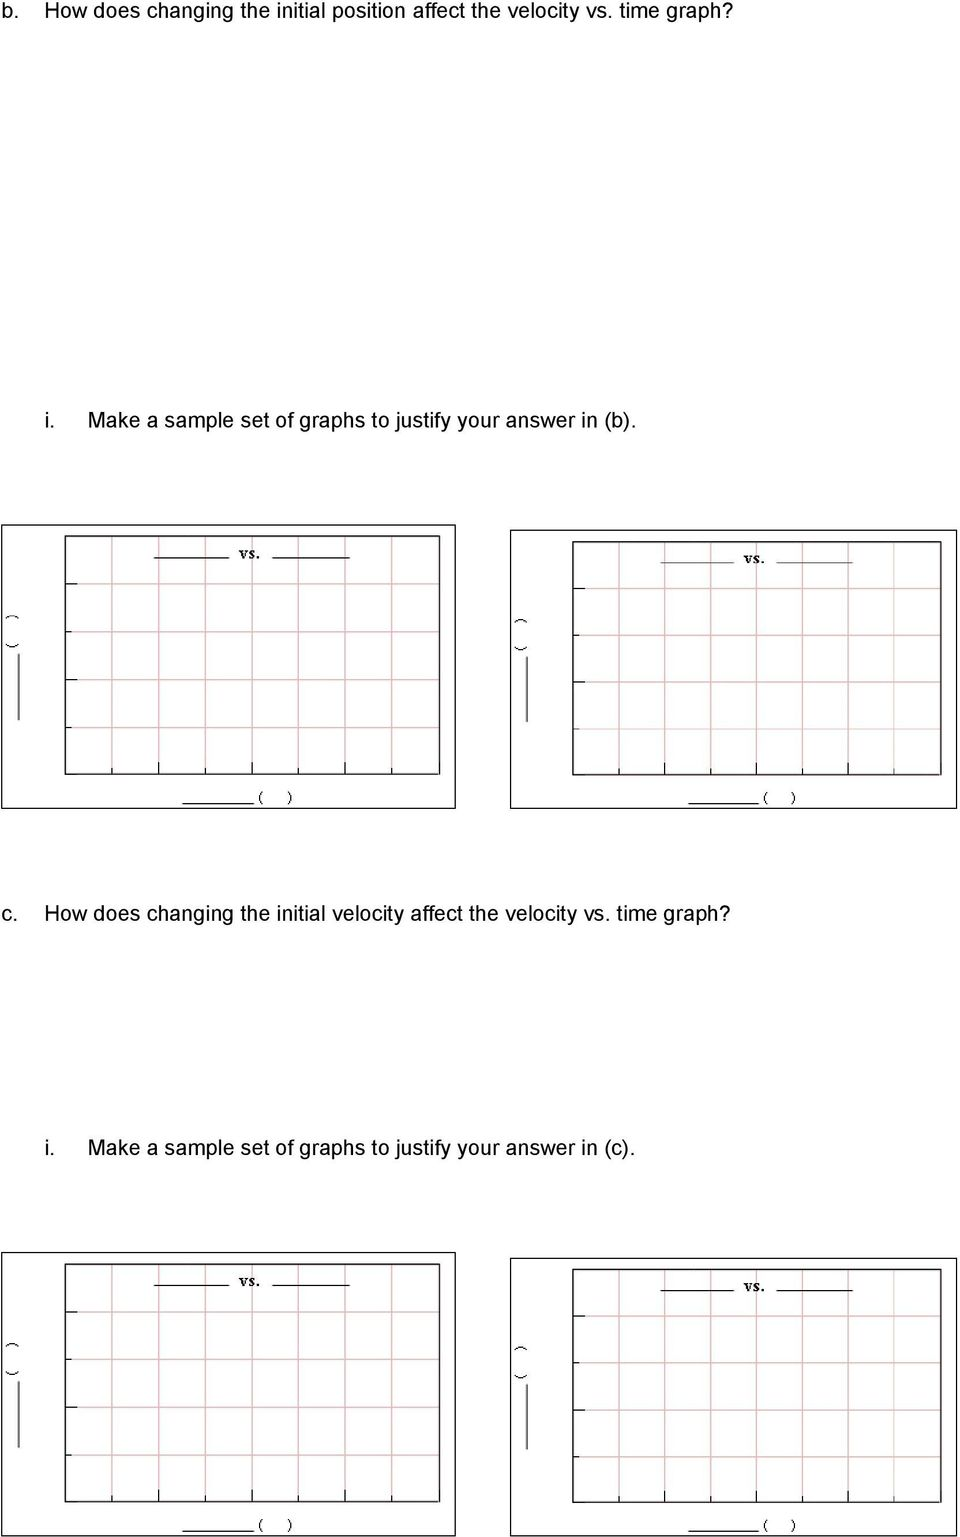 Worksheet For Exploration 2 1 Compare Position Vs Time And